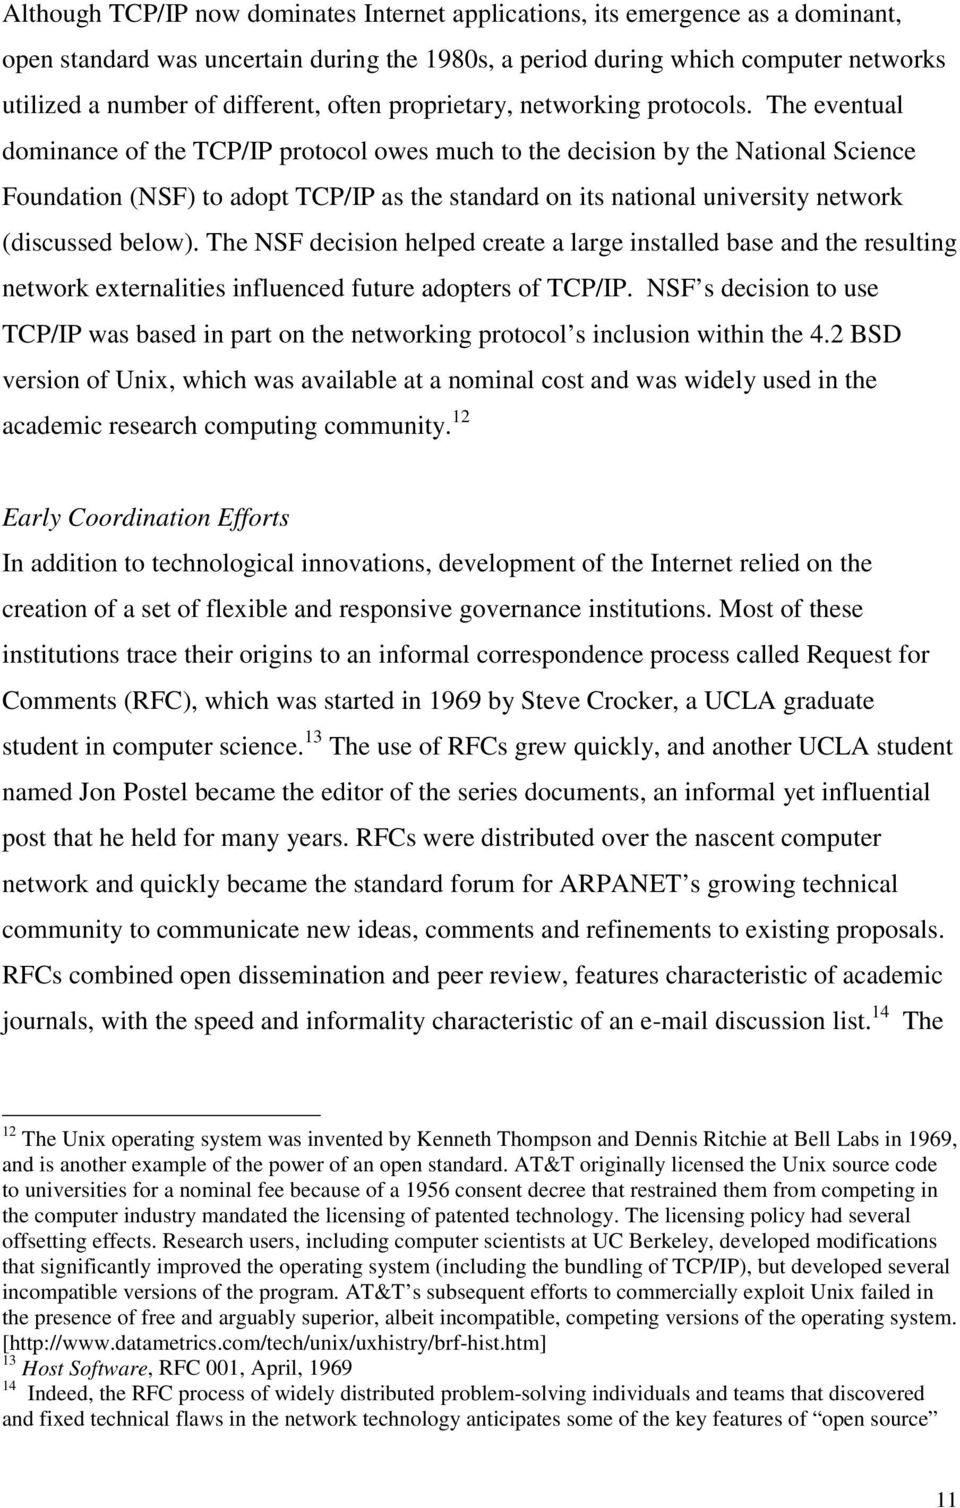 The eventual dominance of the TCP/IP protocol owes much to the decision by the National Science Foundation (NSF) to adopt TCP/IP as the standard on its national university network (discussed below).